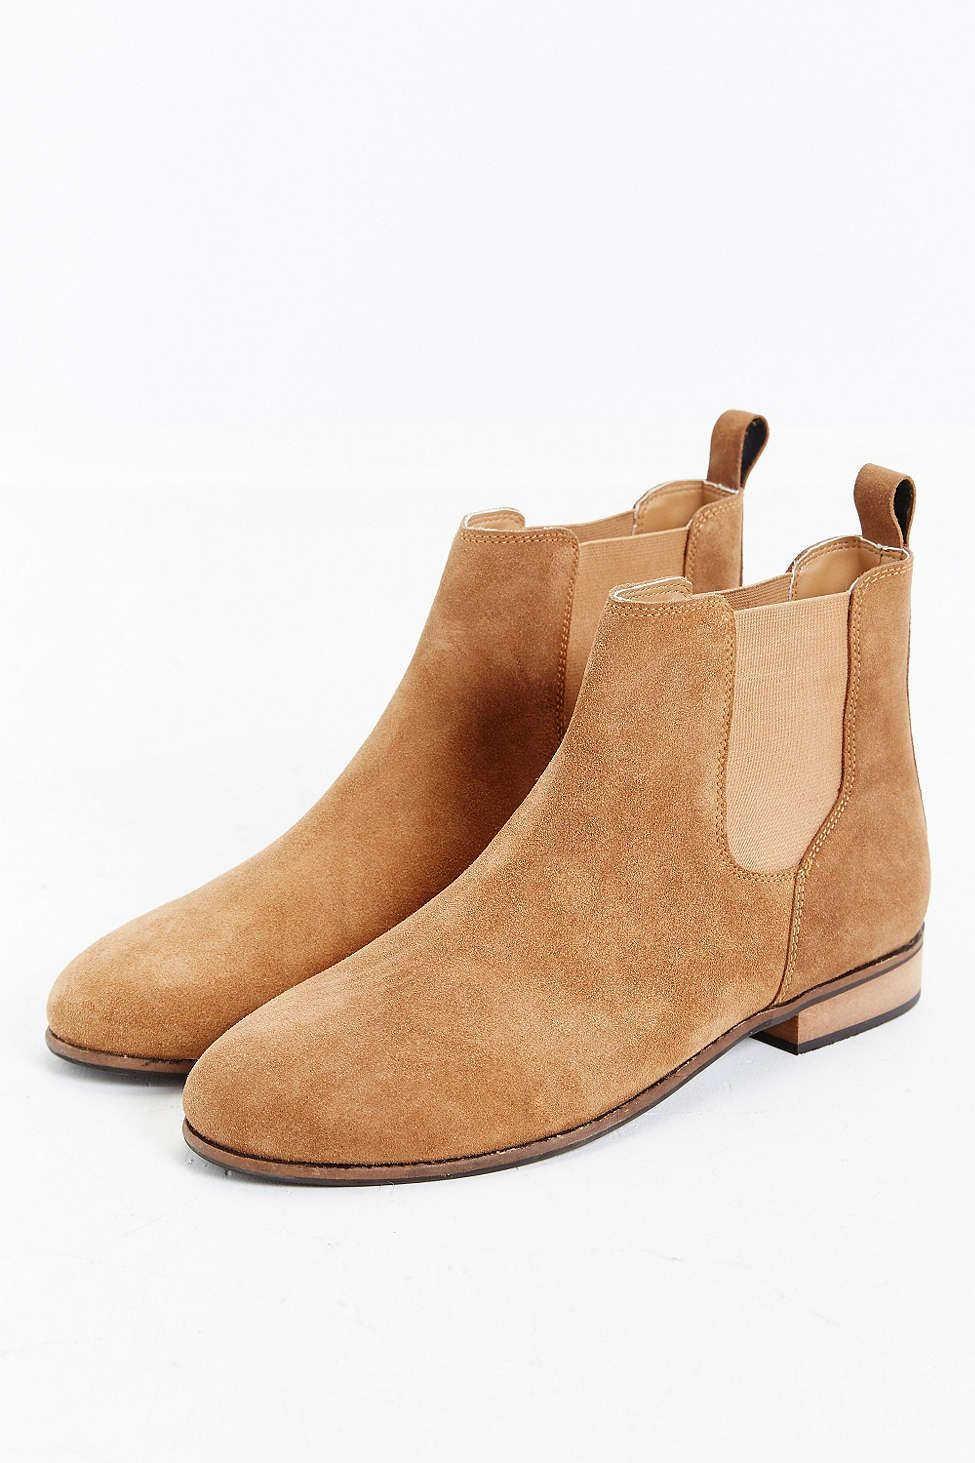 26beb8b3b8c UO Suede Chelsea Boot | My Style | Chelsea boots, Suede chelsea ...